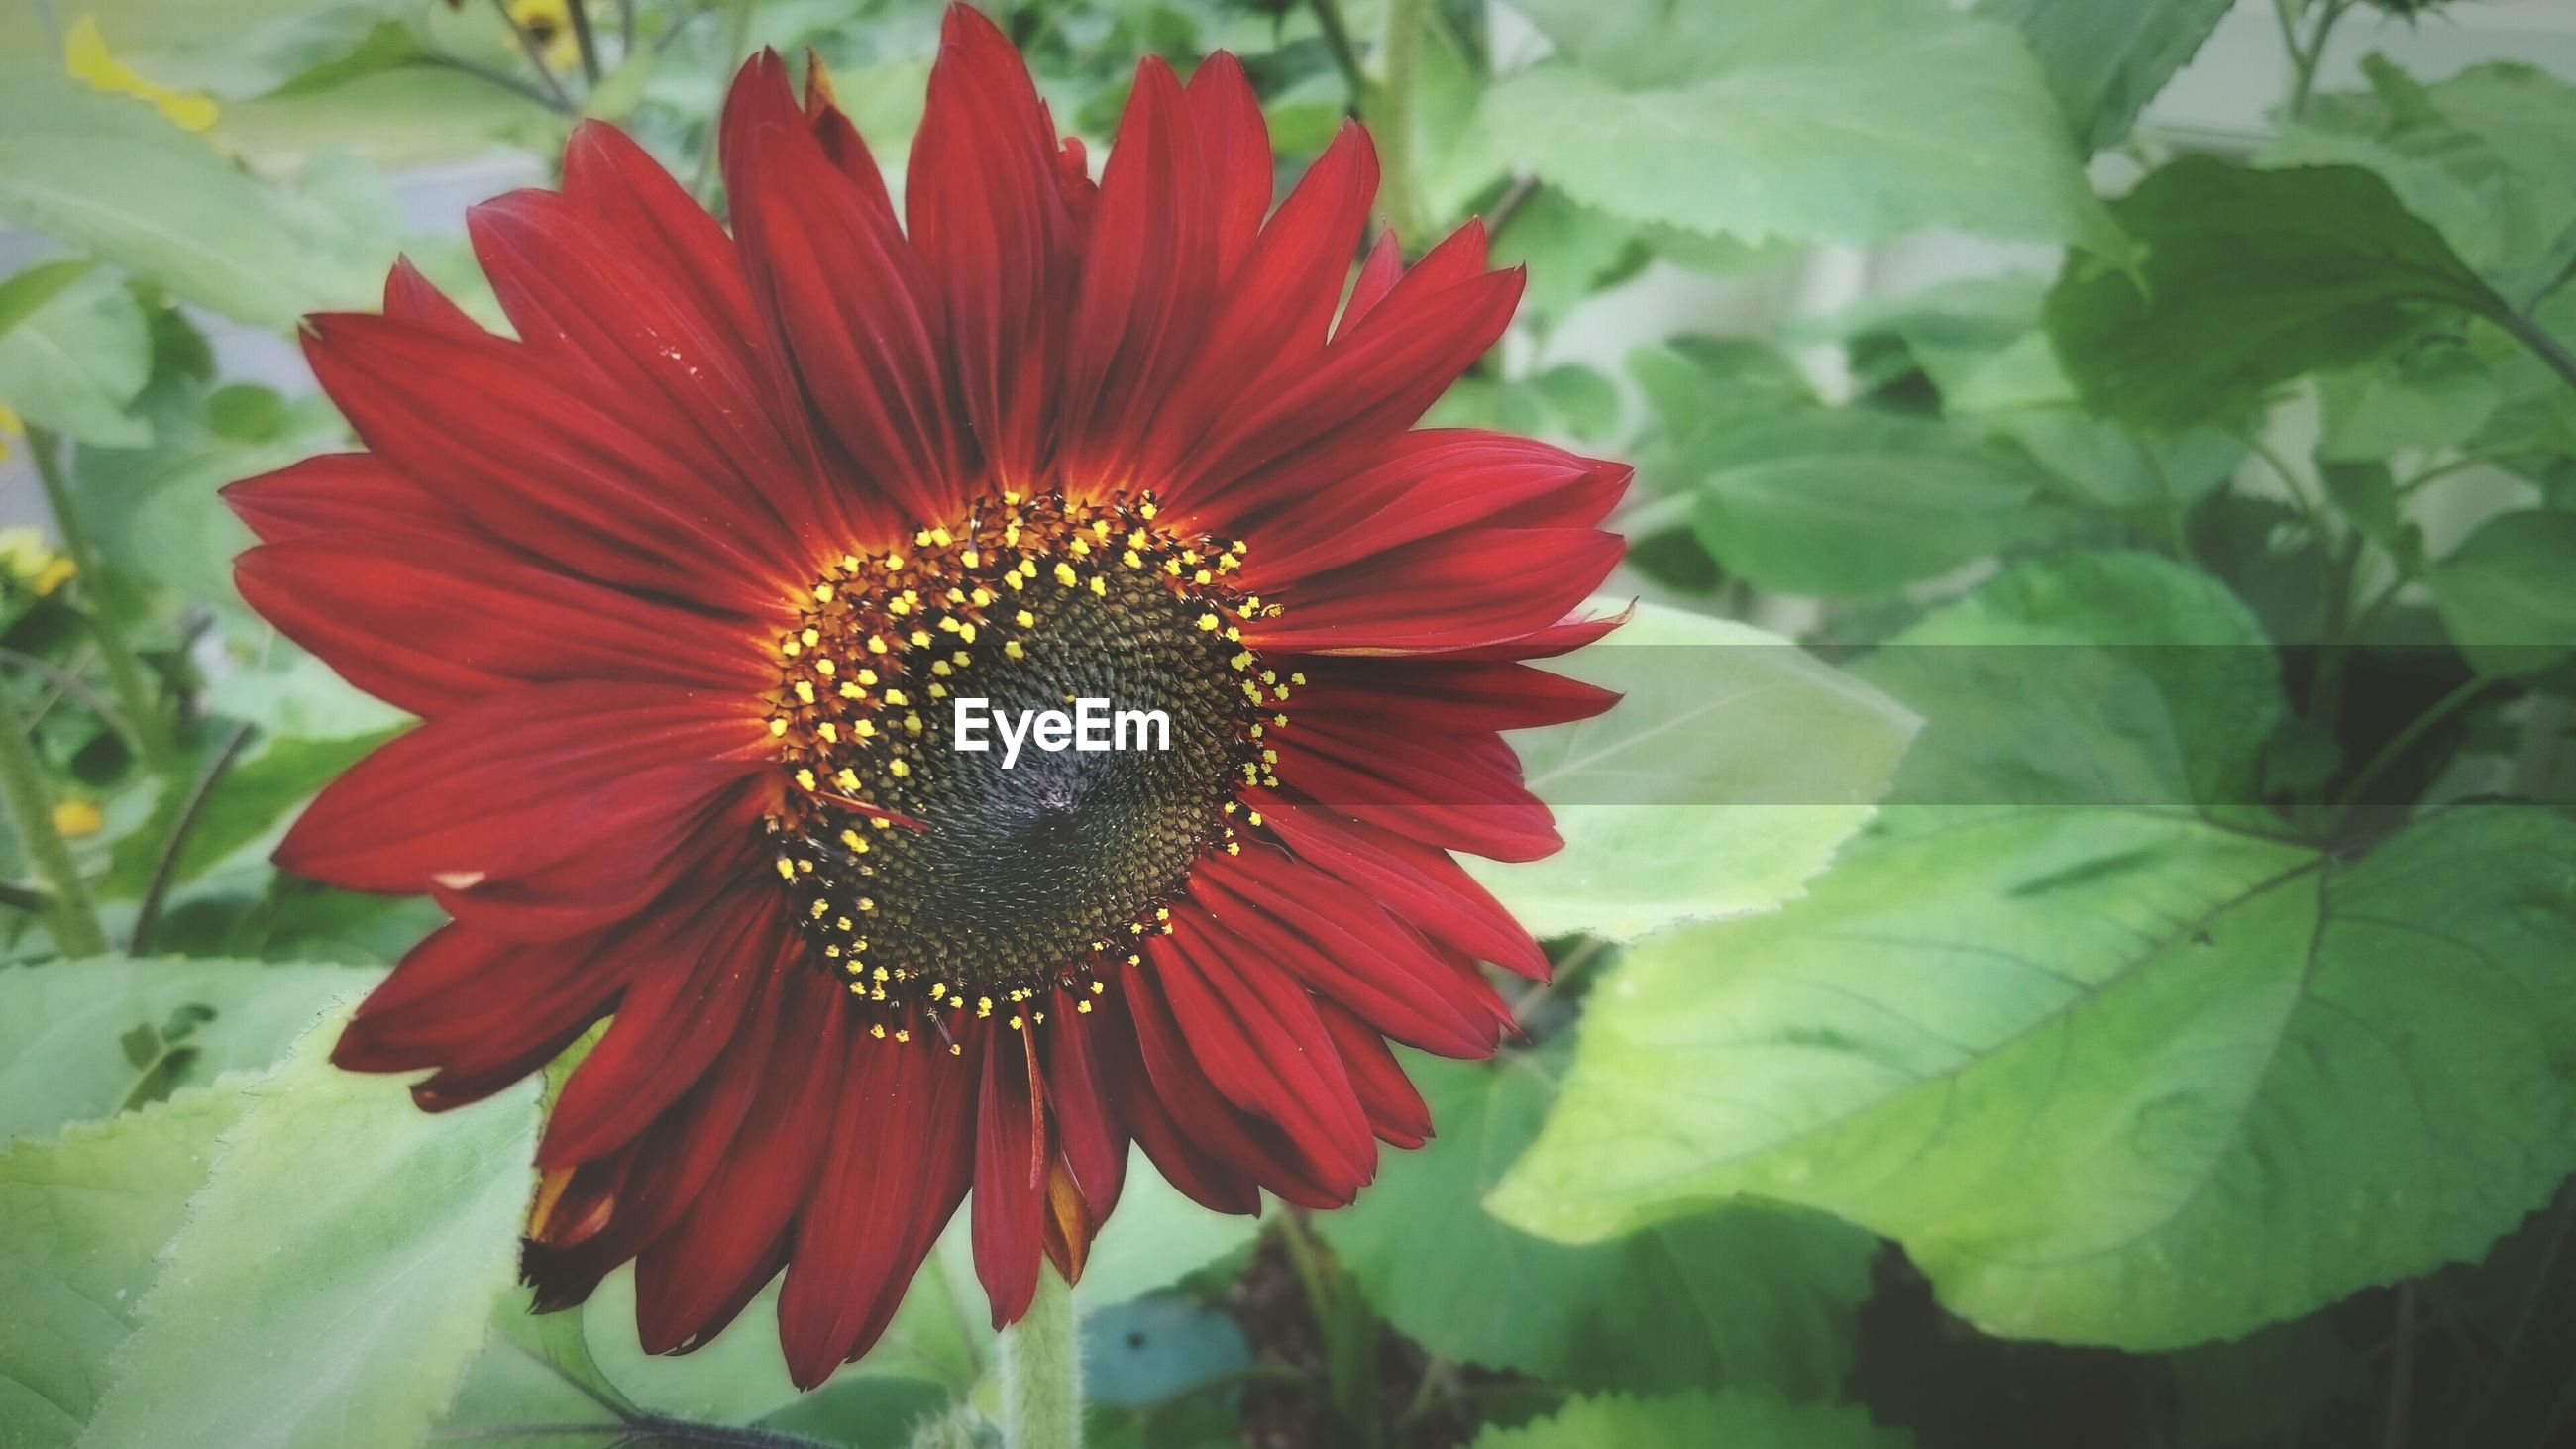 Red sunflower blooming outdoors